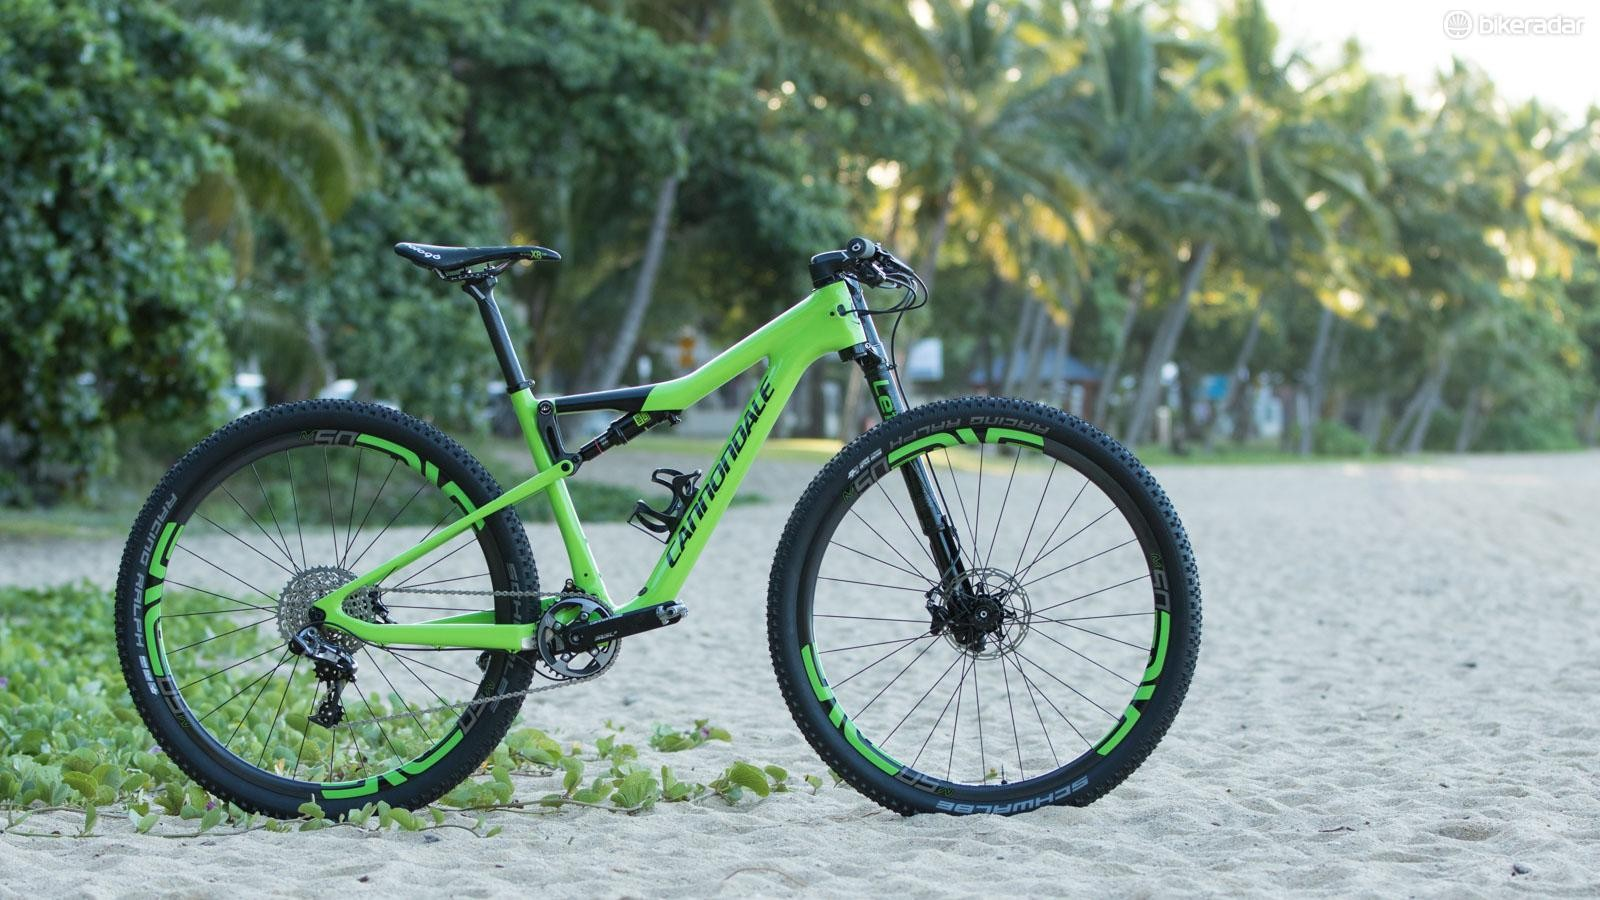 Forever different to the rest of the field, Cannondale has overhauled its longstanding full-suspension XC bike. We take a look at the Scalpel Si belonging to Manuel Fumic